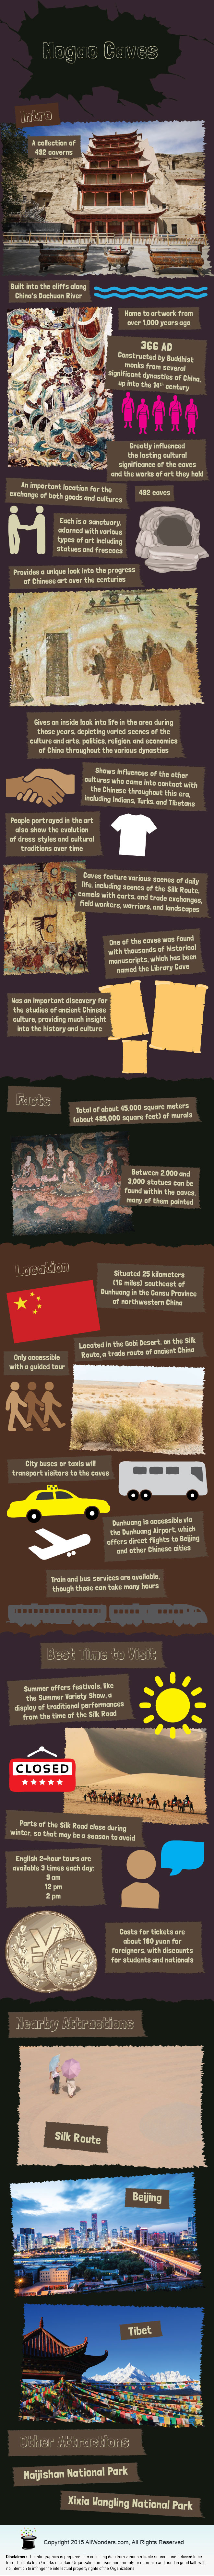 Mogao Caves Facts & Infographic